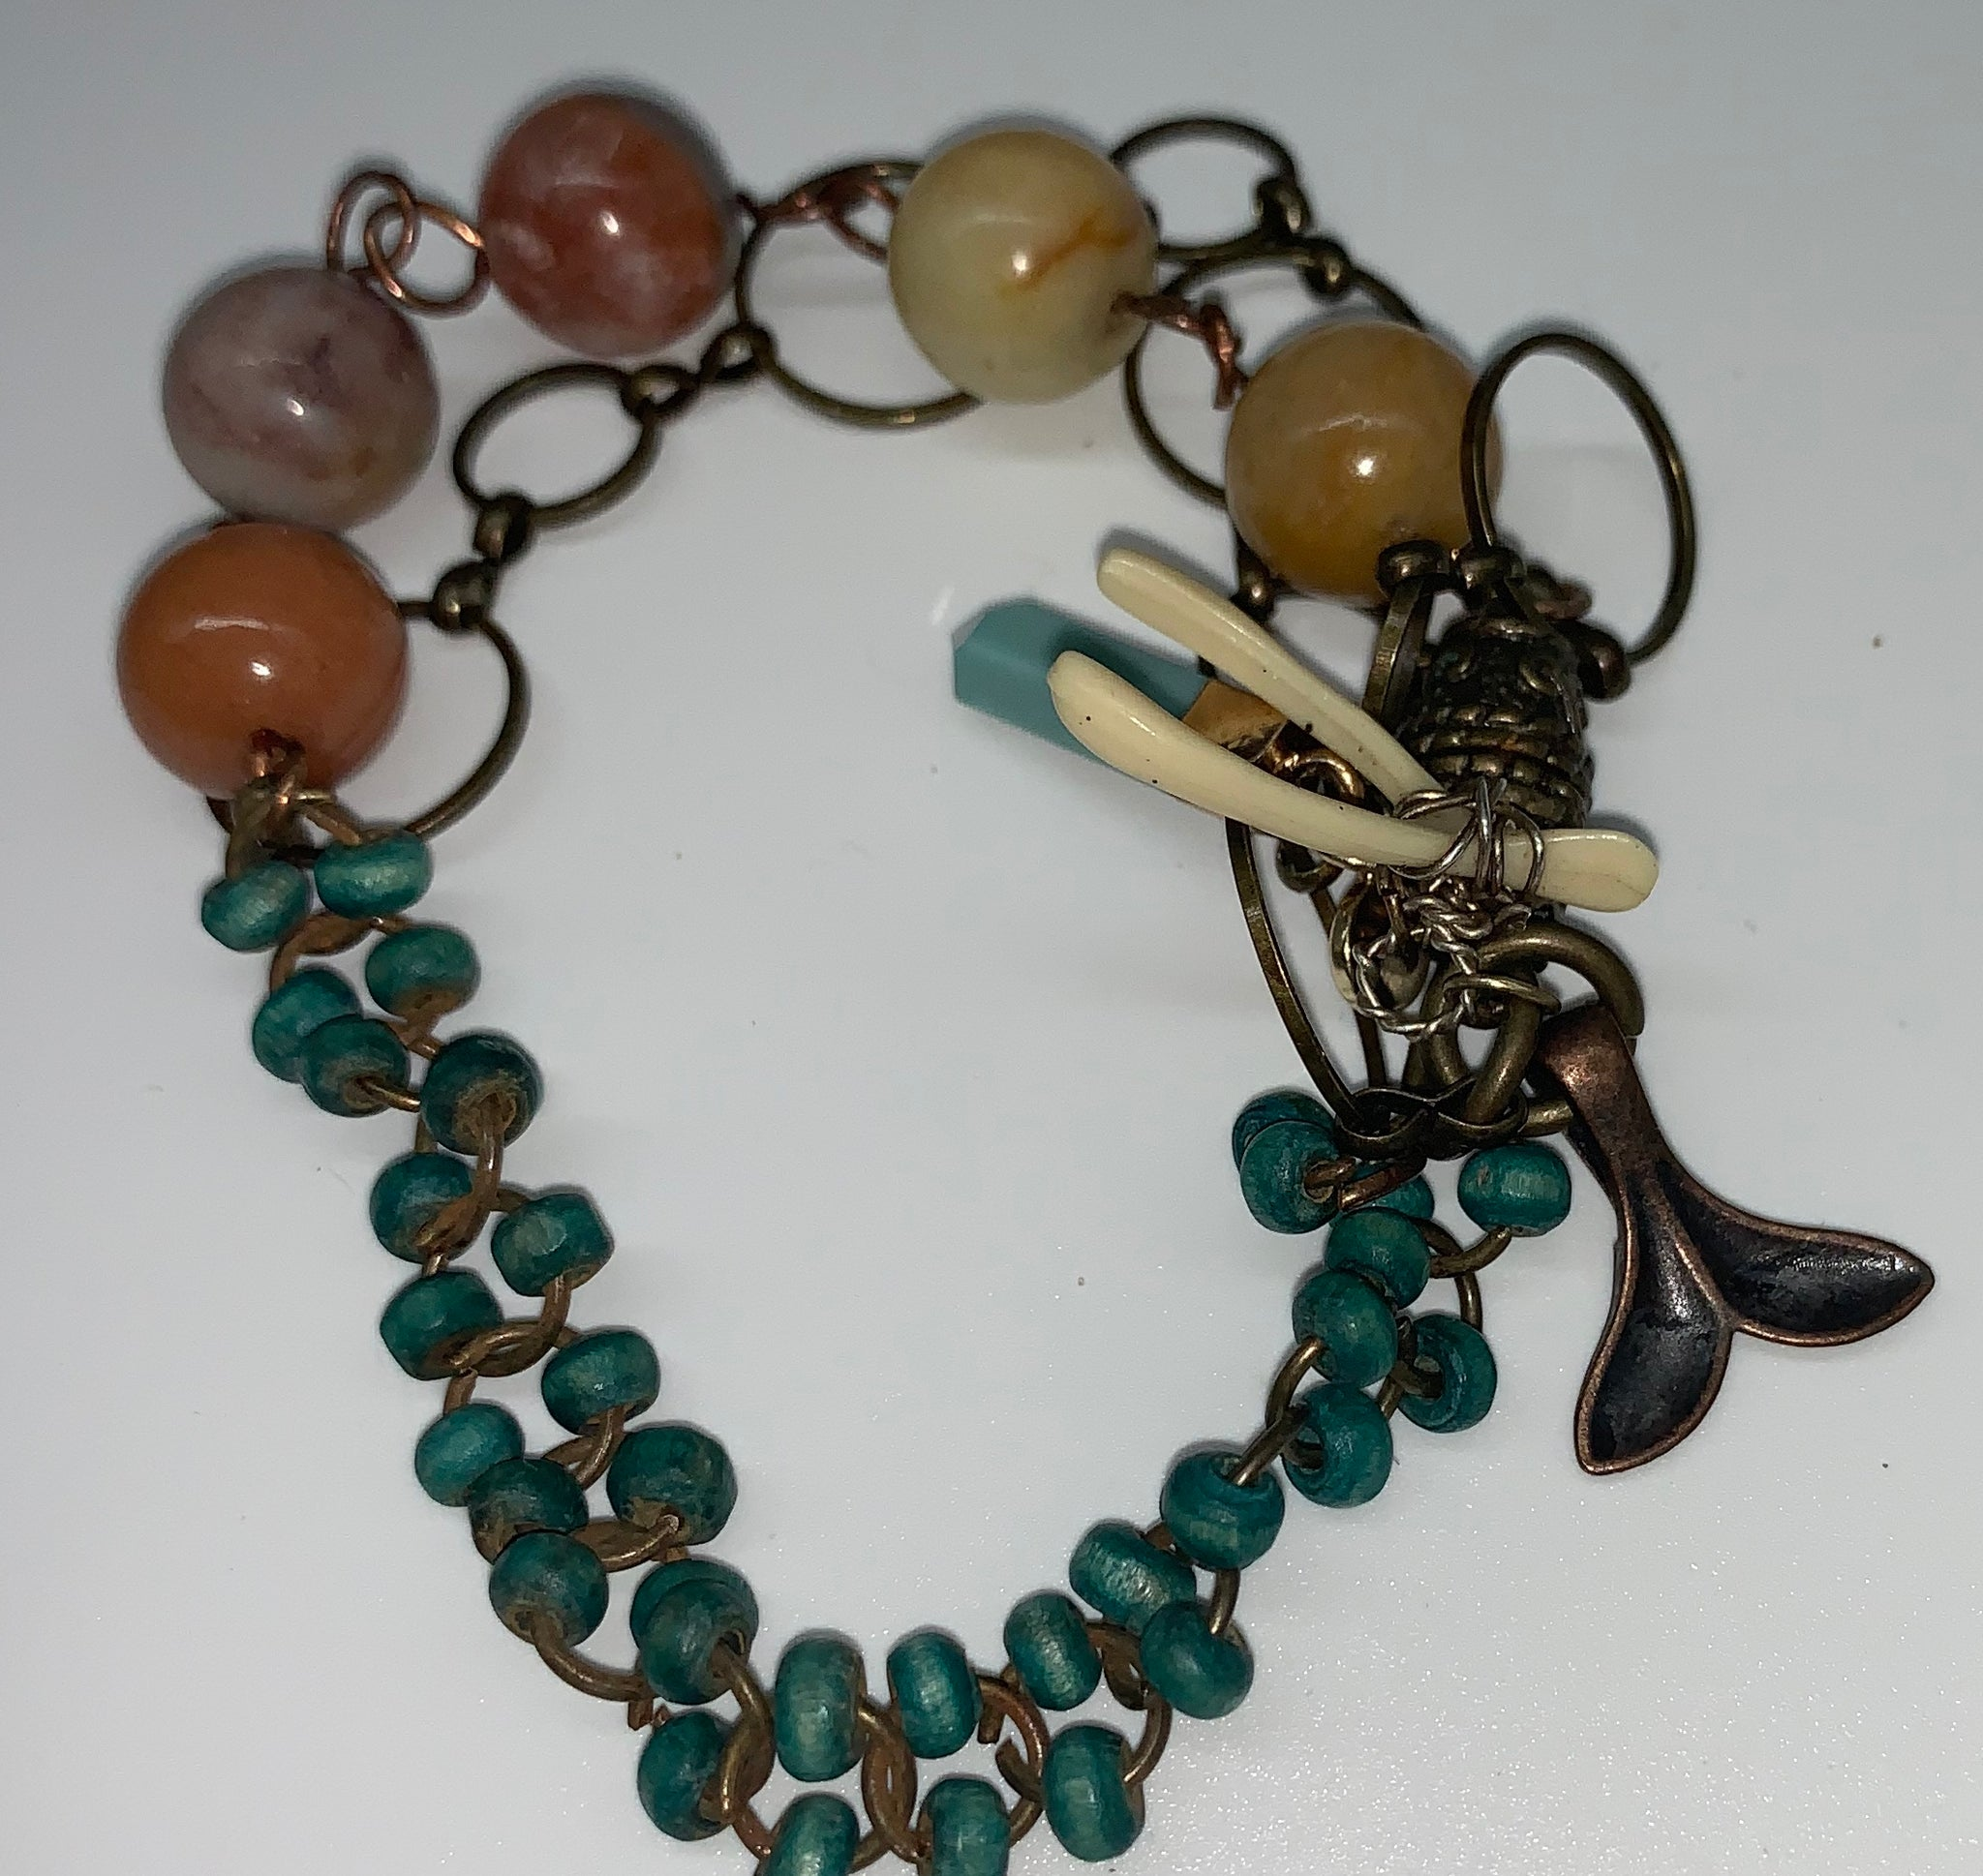 Autumn Amazonite Bracelet by Sarah Bernzott